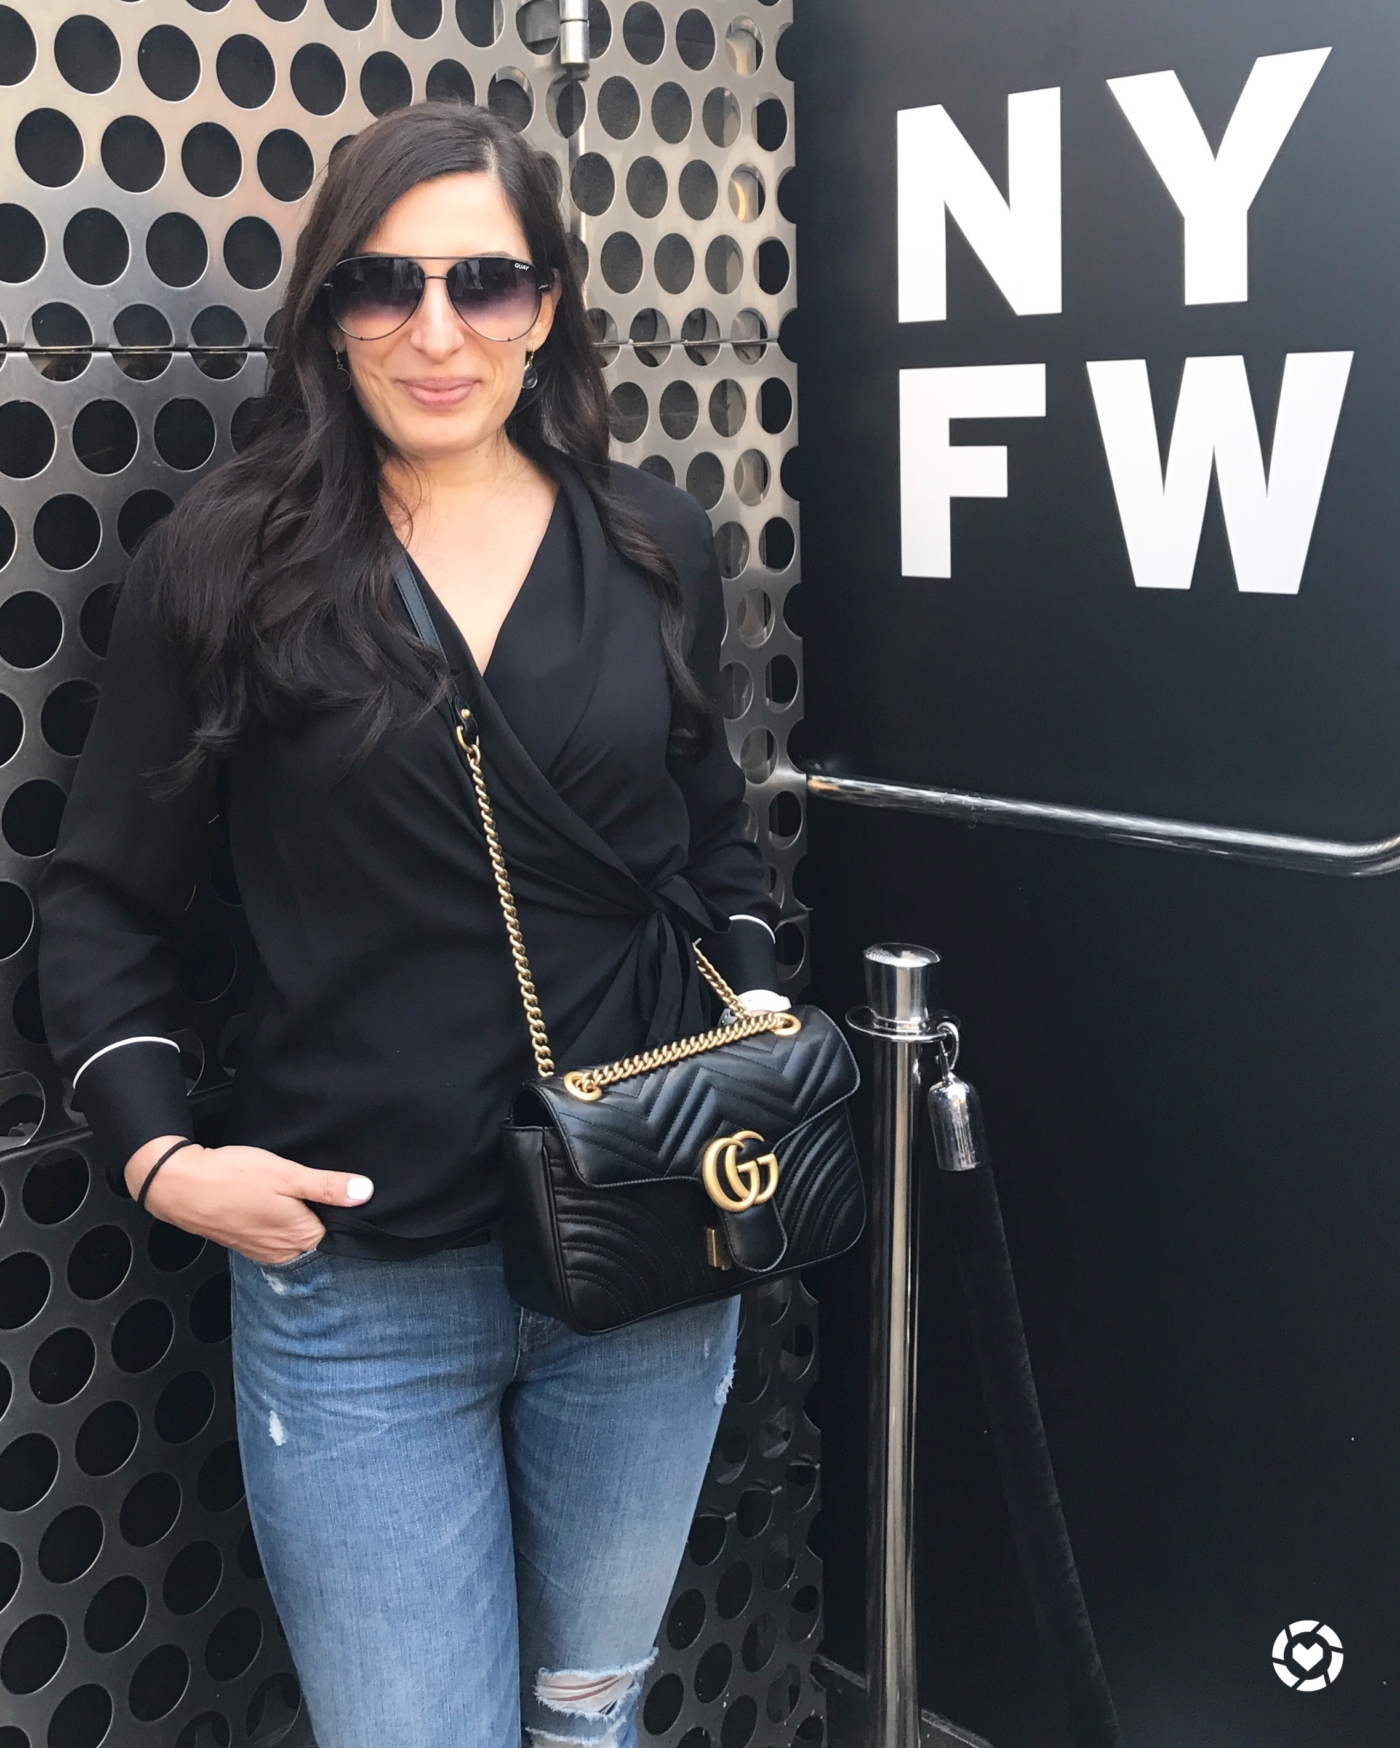 NYFW September 2017, Zara Top, Gucci Marmont Bag, Quay Sunglasses